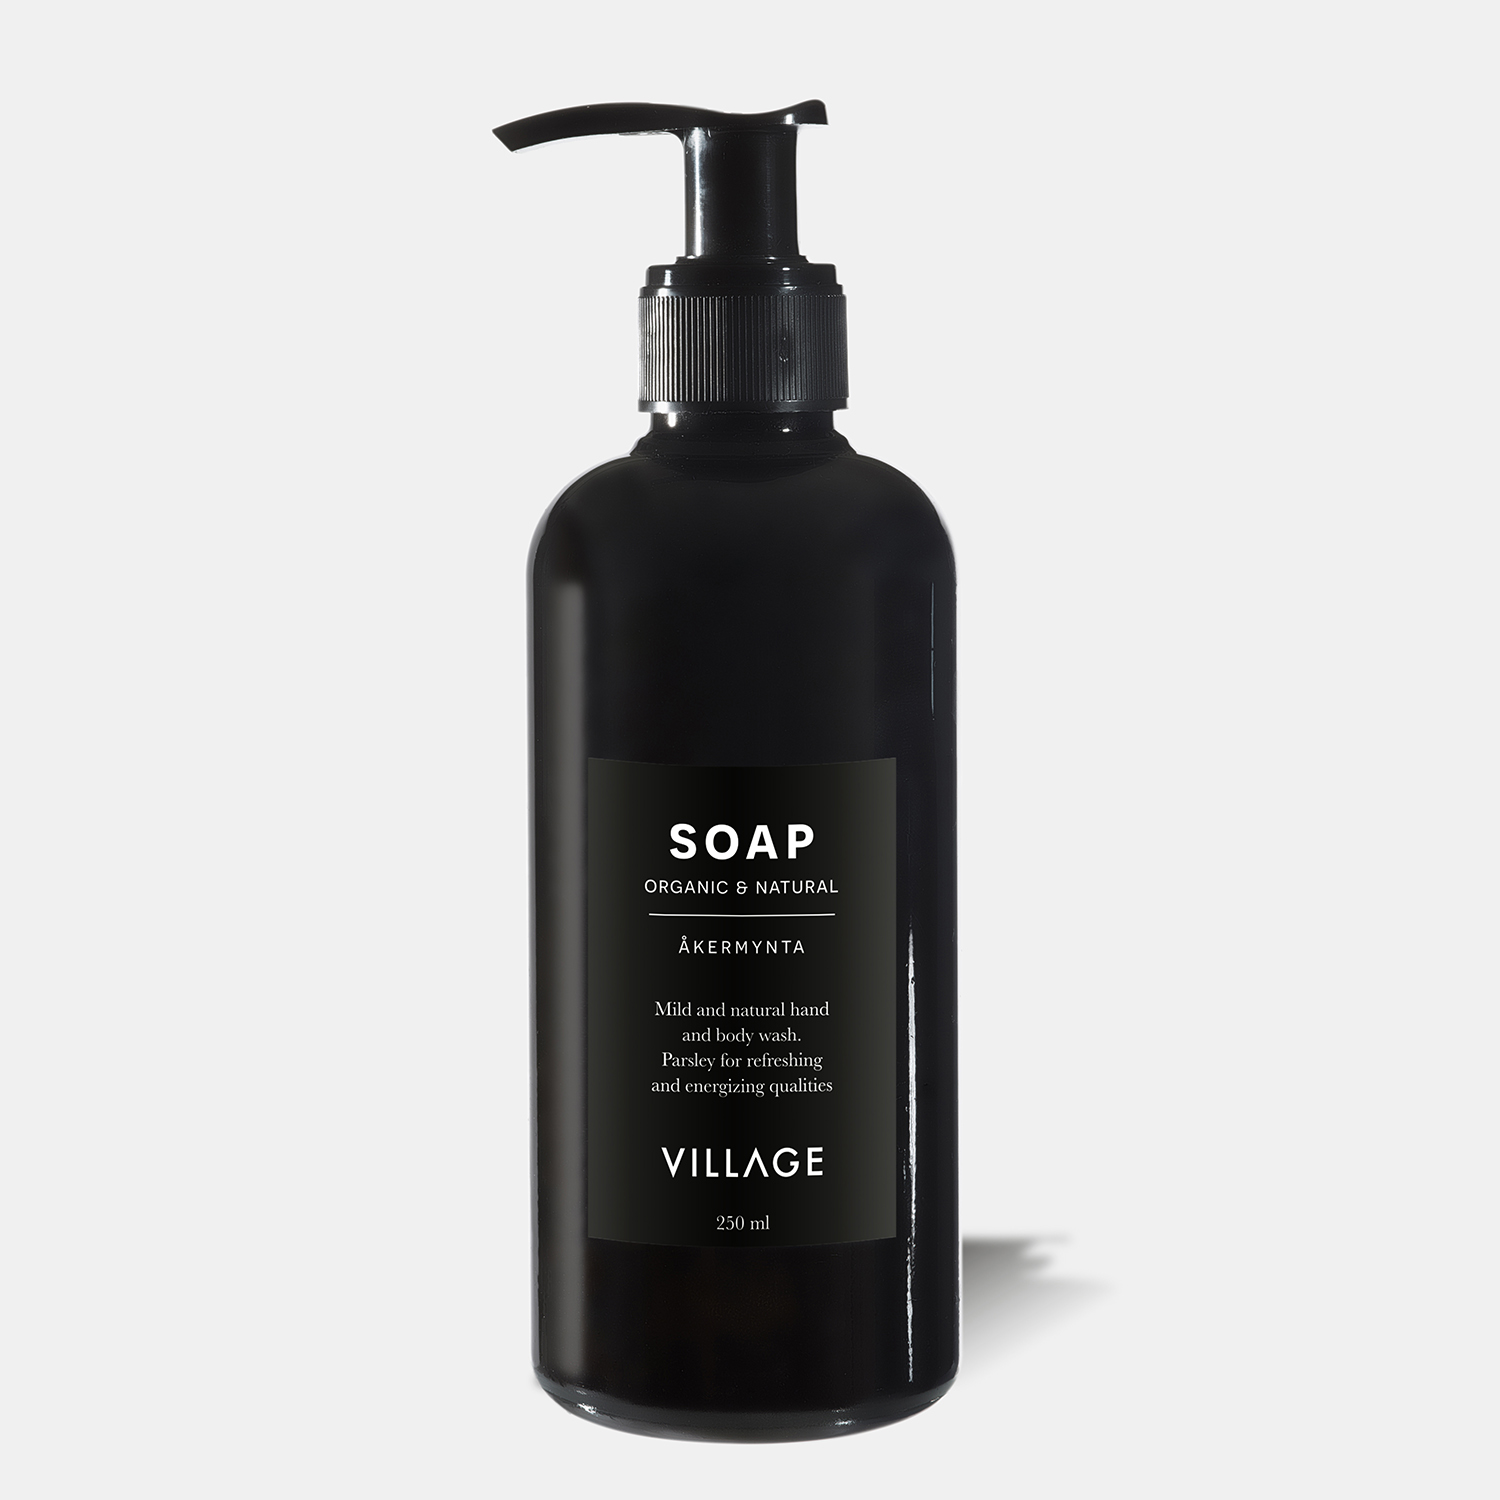 gift liquid soap for body and hands with wild mint scent